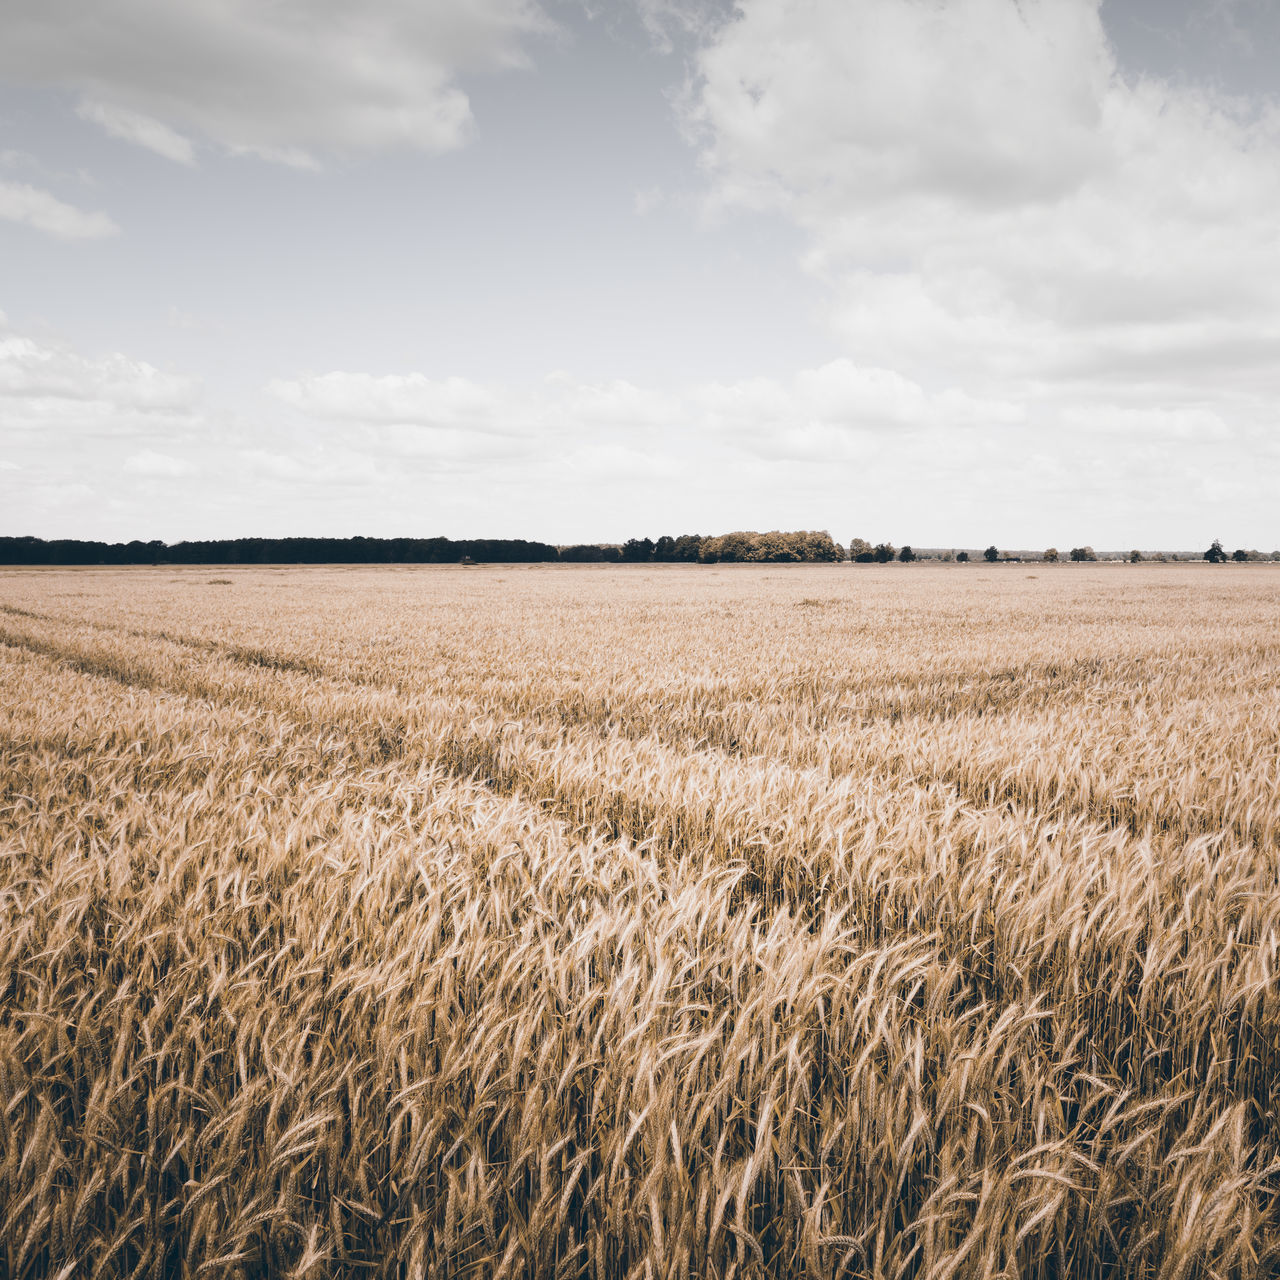 scenic view of field against sky Agriculture Brandenburg Cereal Plant Corn Field Crop Field Day Field Food Germany Growth Havelland Landscape Muted Colors Nature No People Outdoors Philipp Dase Rural Scene Sky Summer Summer Field Summer Vibes Summertime Wheat